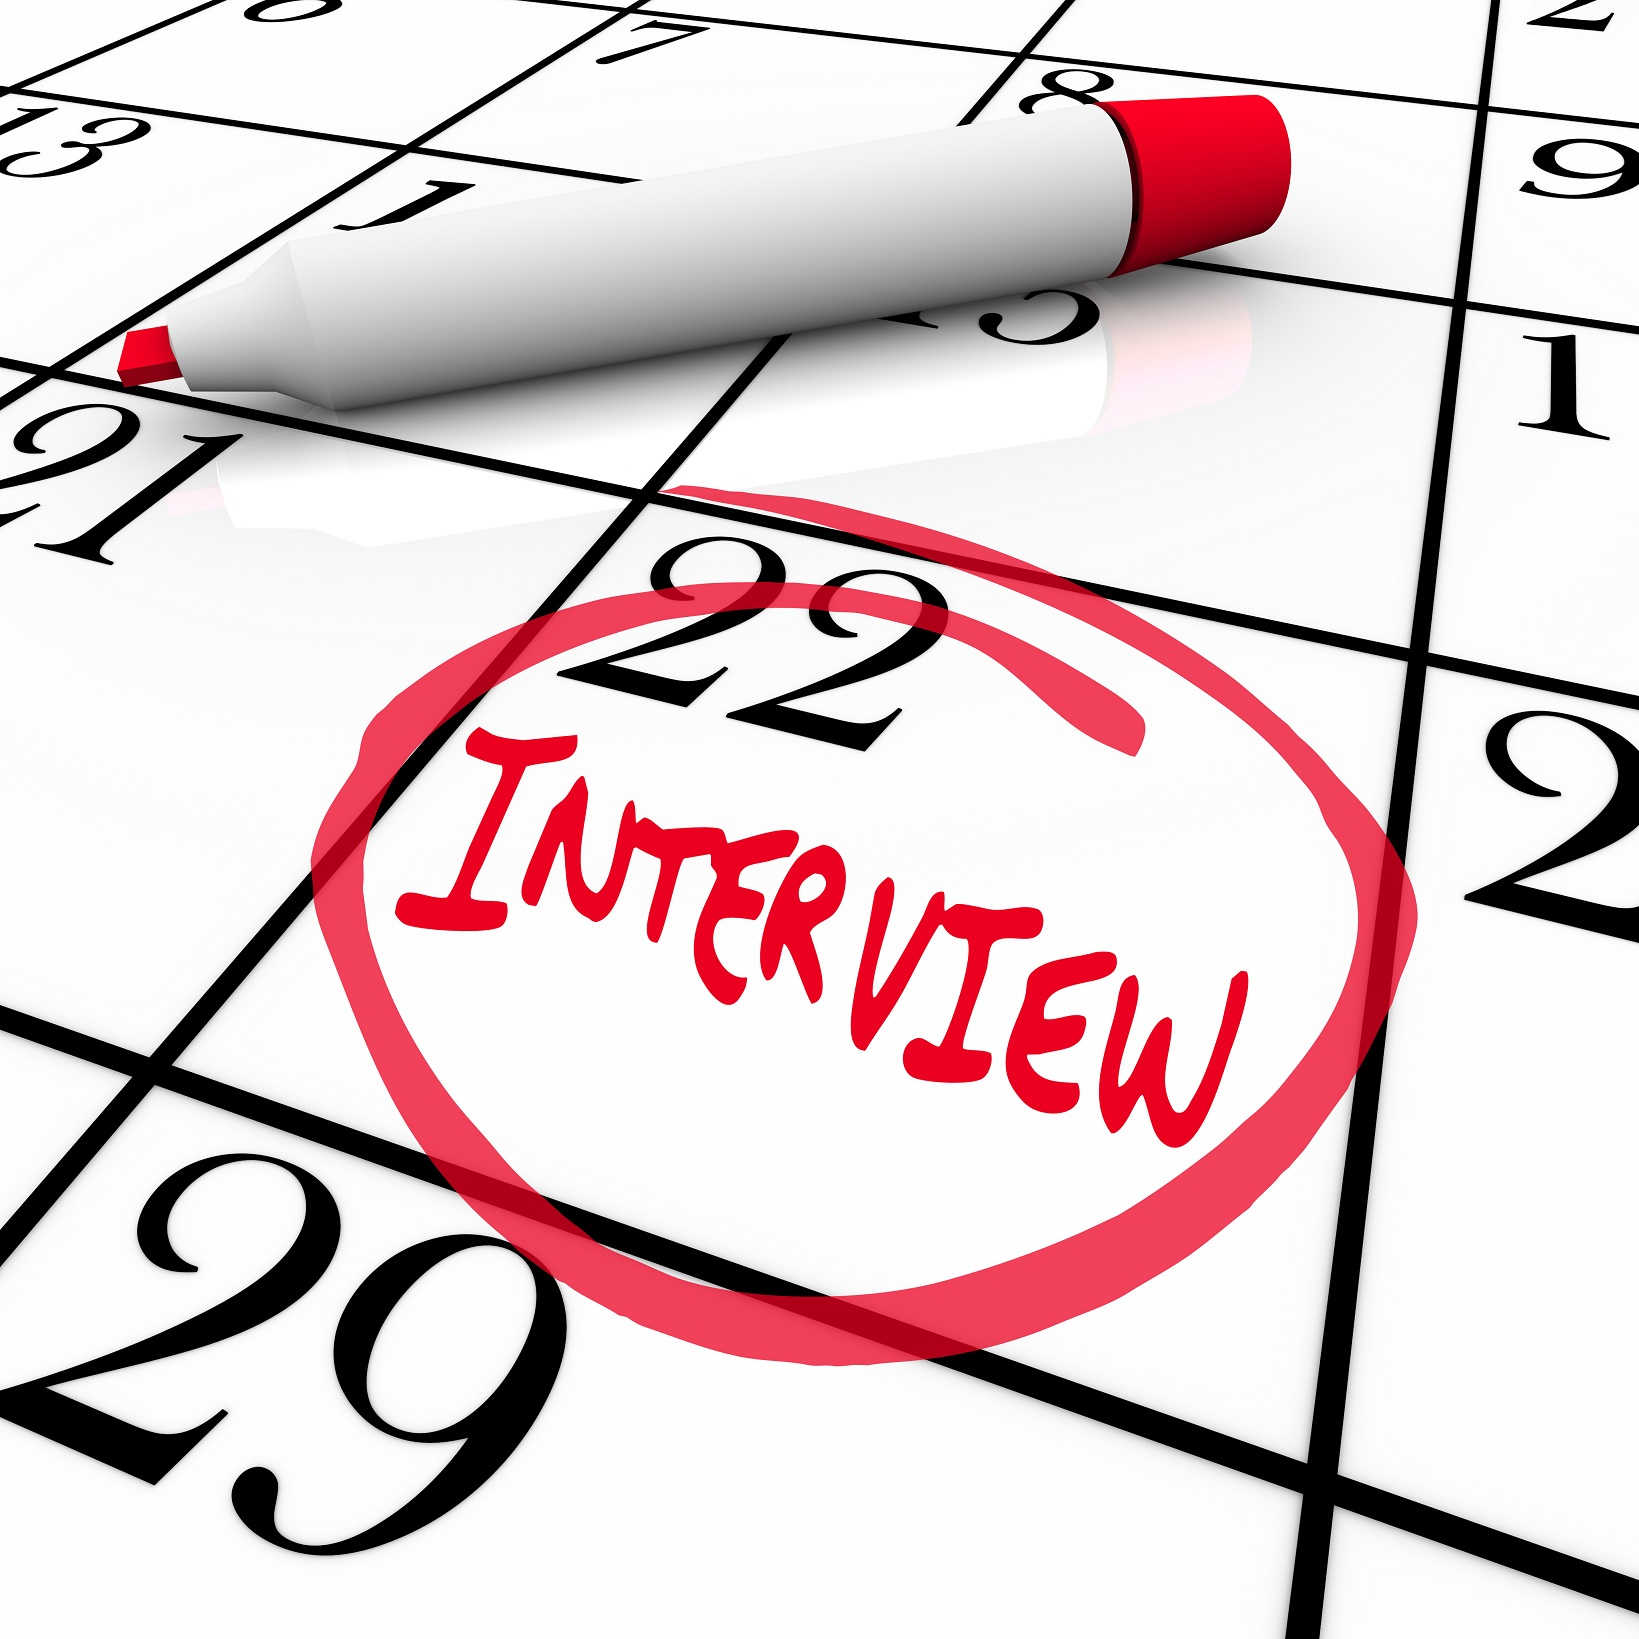 Interview questions and answers, interview tips and resources to guide the interviewer through the process of interview preparation, conducting an interview and making a hire